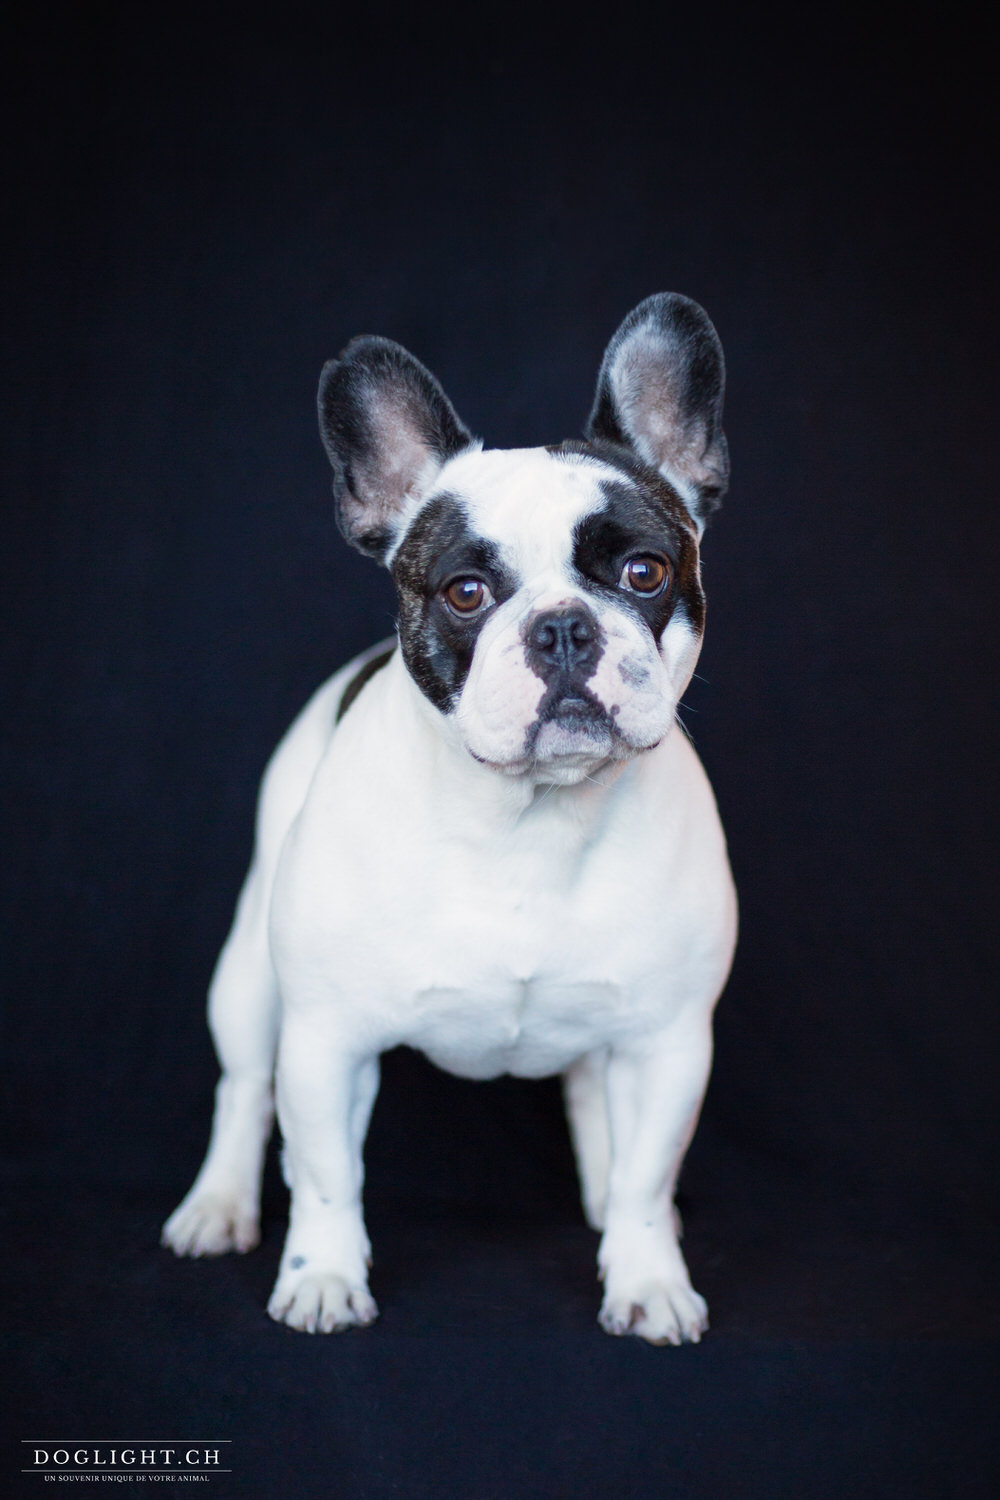 Photo studio bulldog américain fond noir photographe